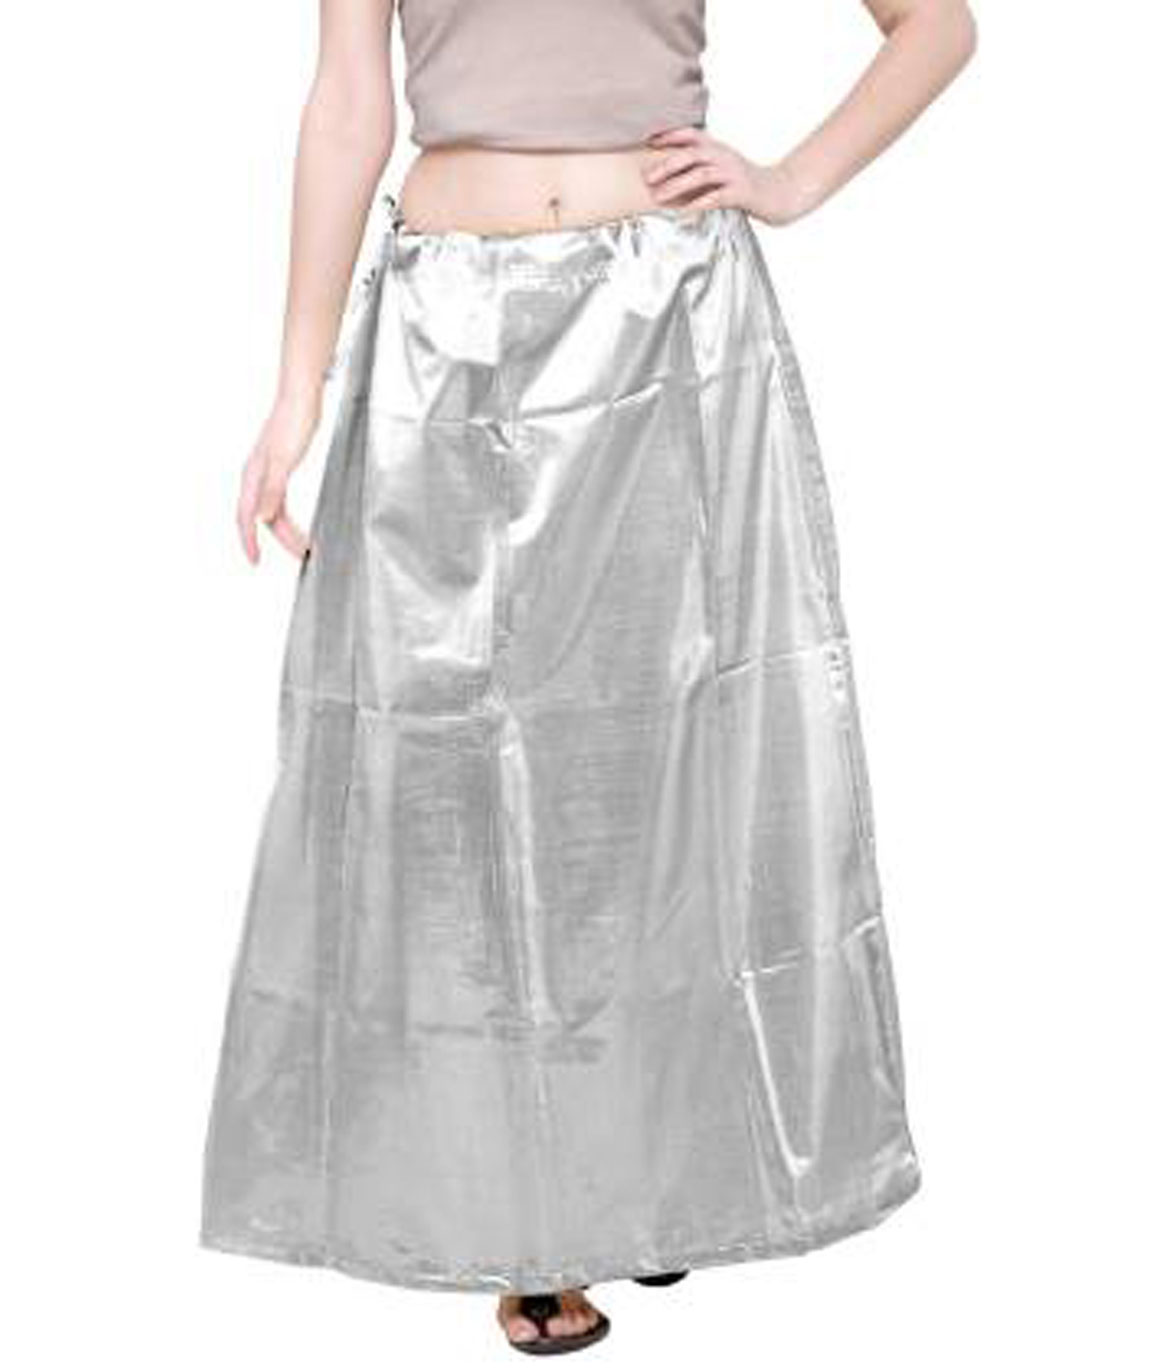 SILVERLSHIMMERPTC48 LEATHER SHIMMER PETTICOAT (XL)